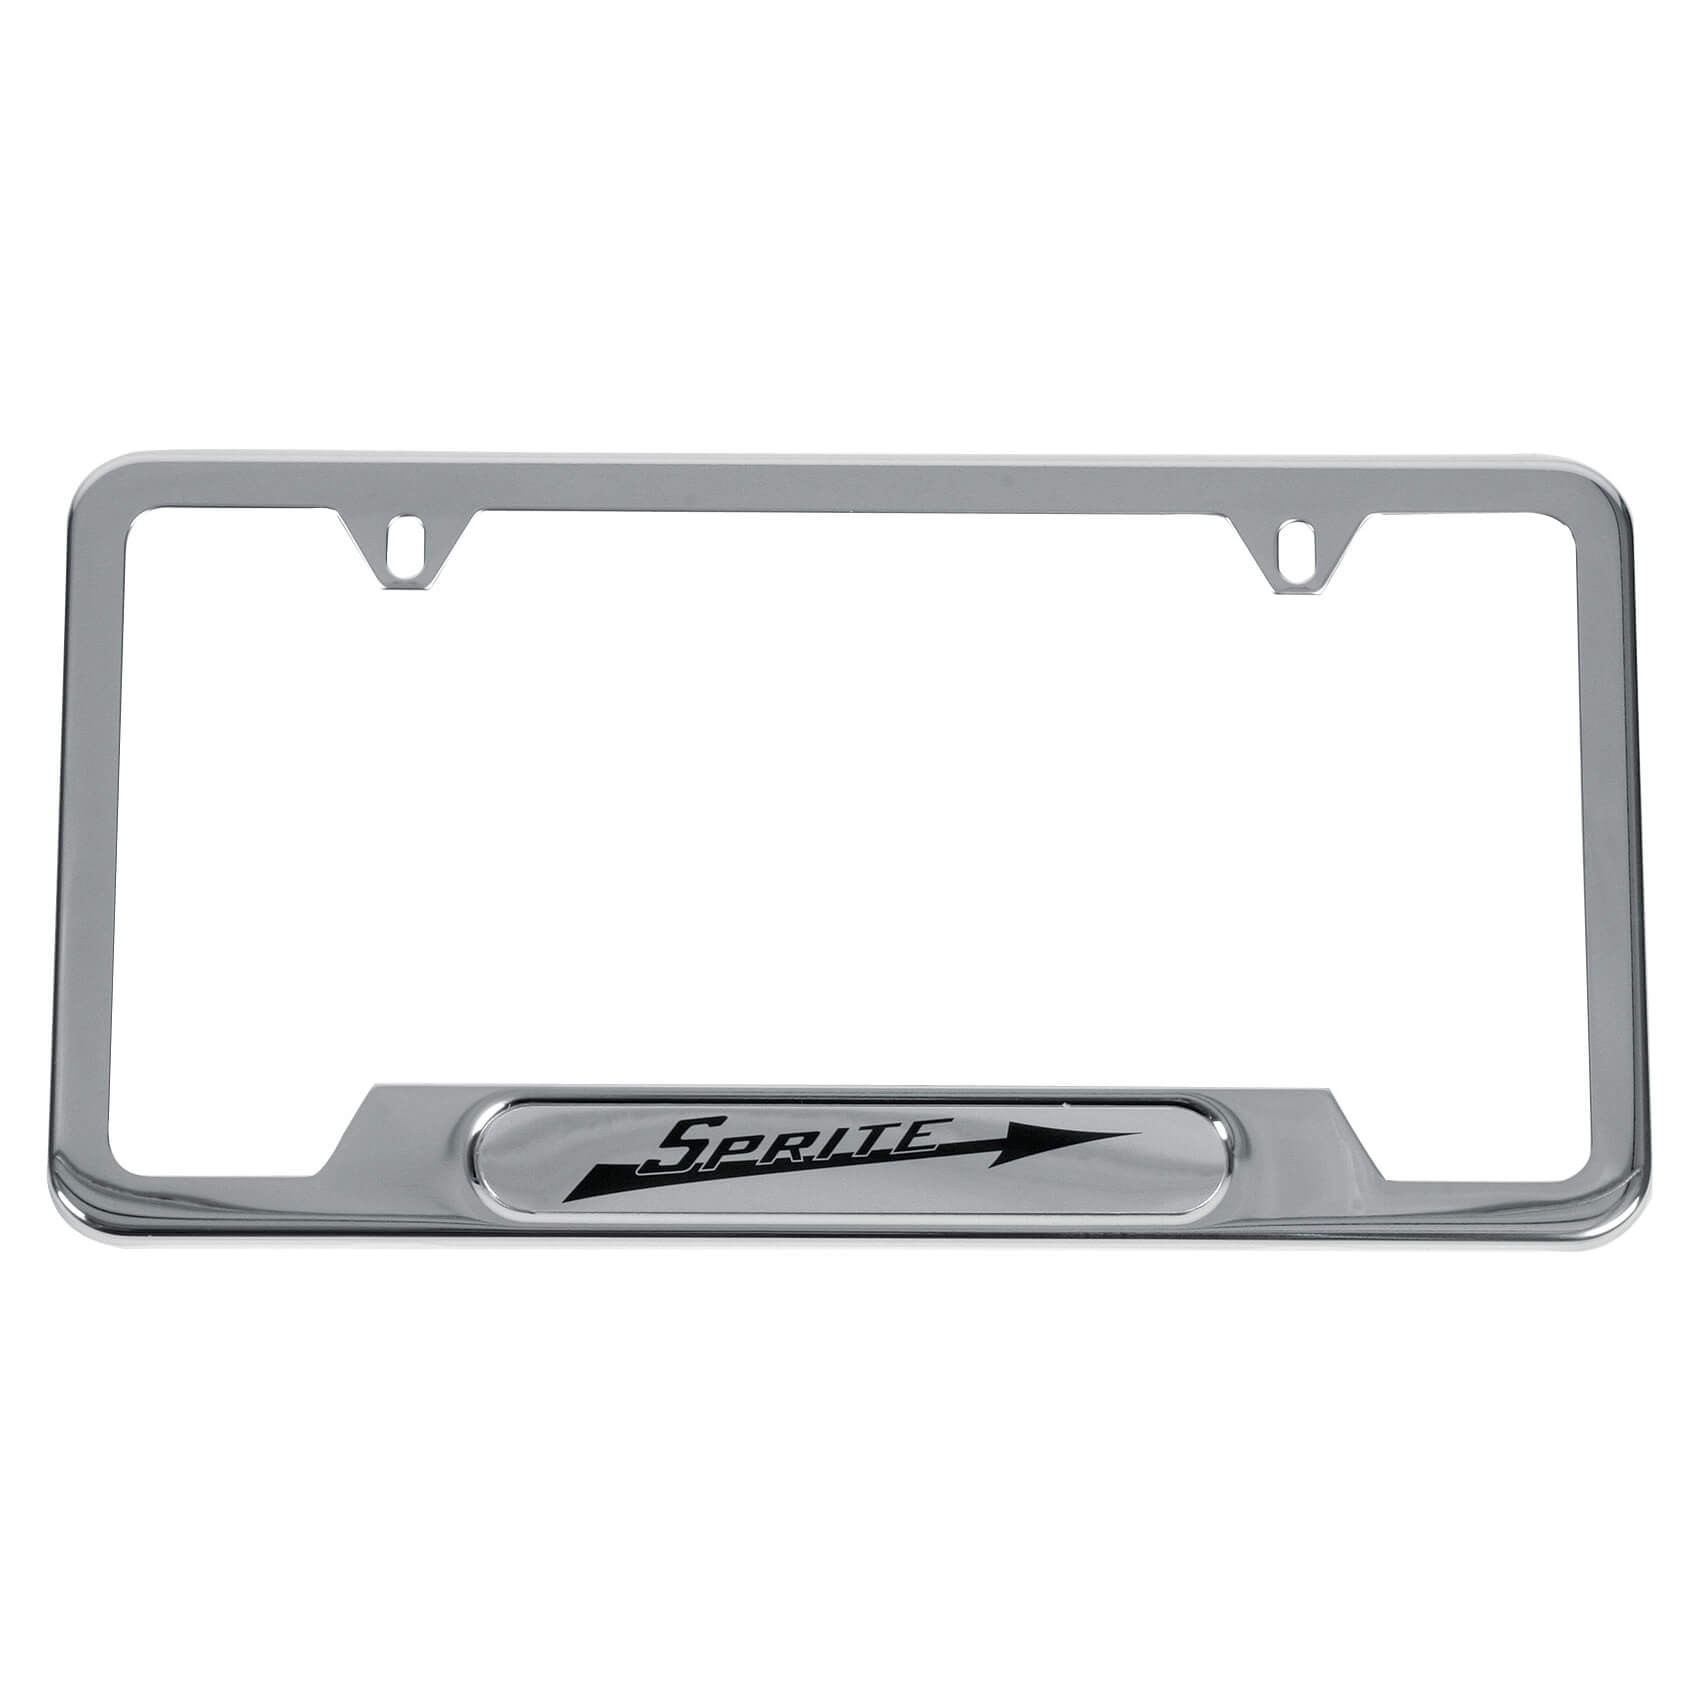 222 880 Sprite License Plate Frame Stainless Steel